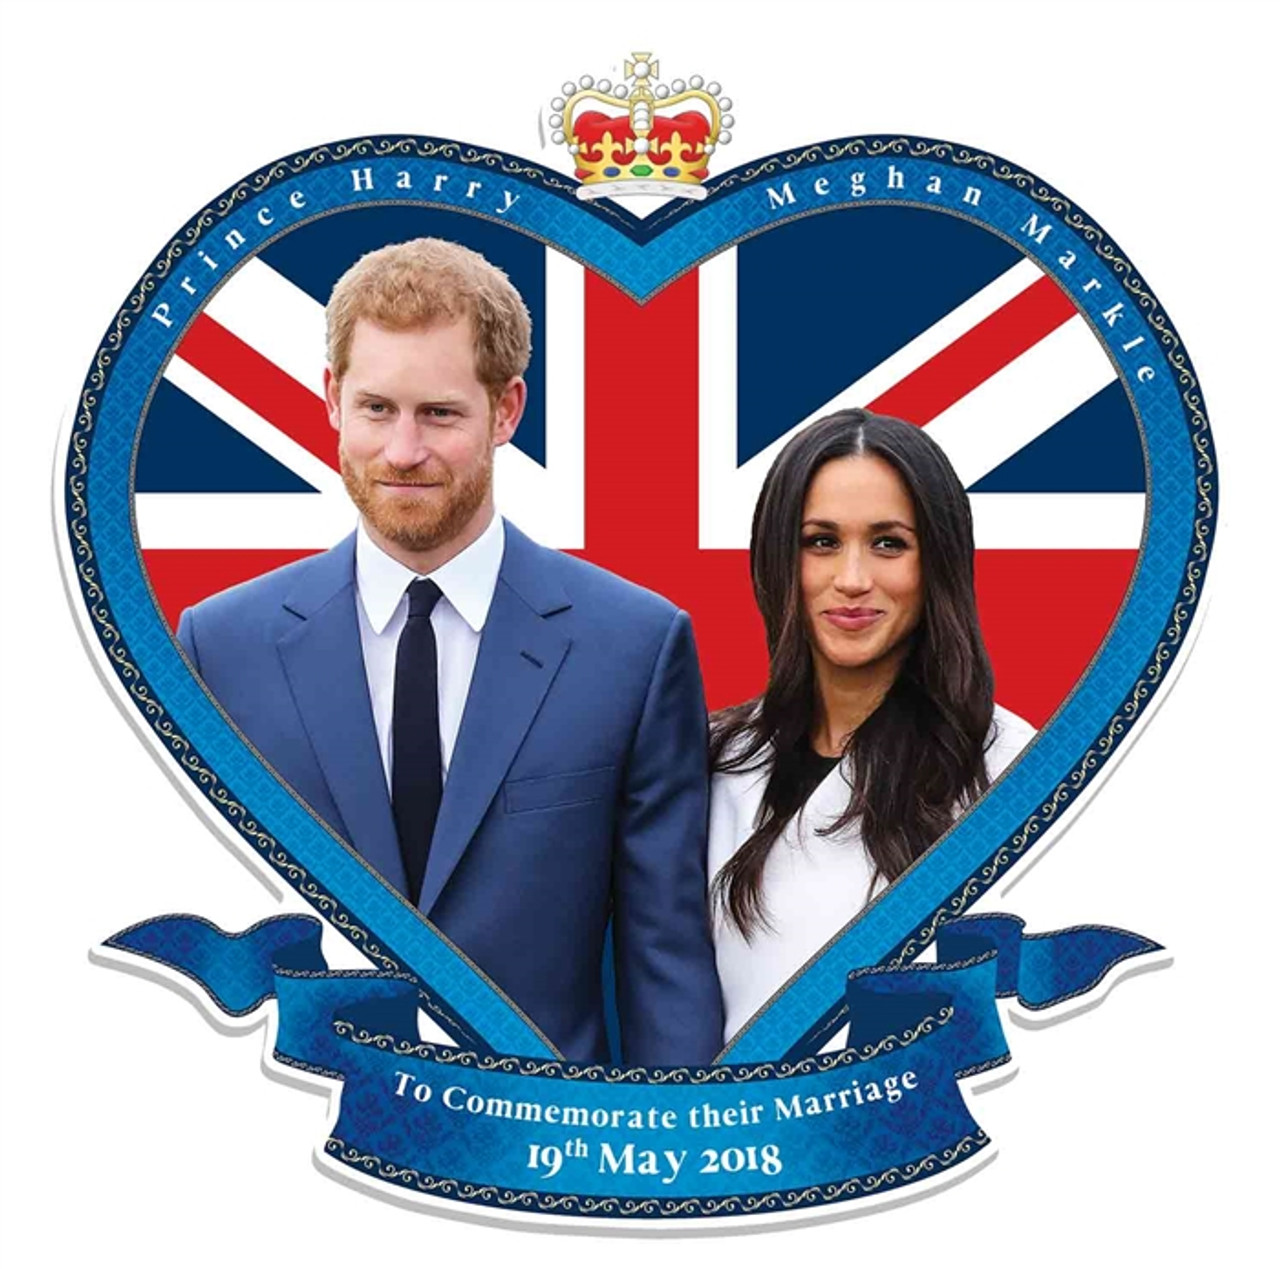 Image result for harry and meghan royal wedding cartoon